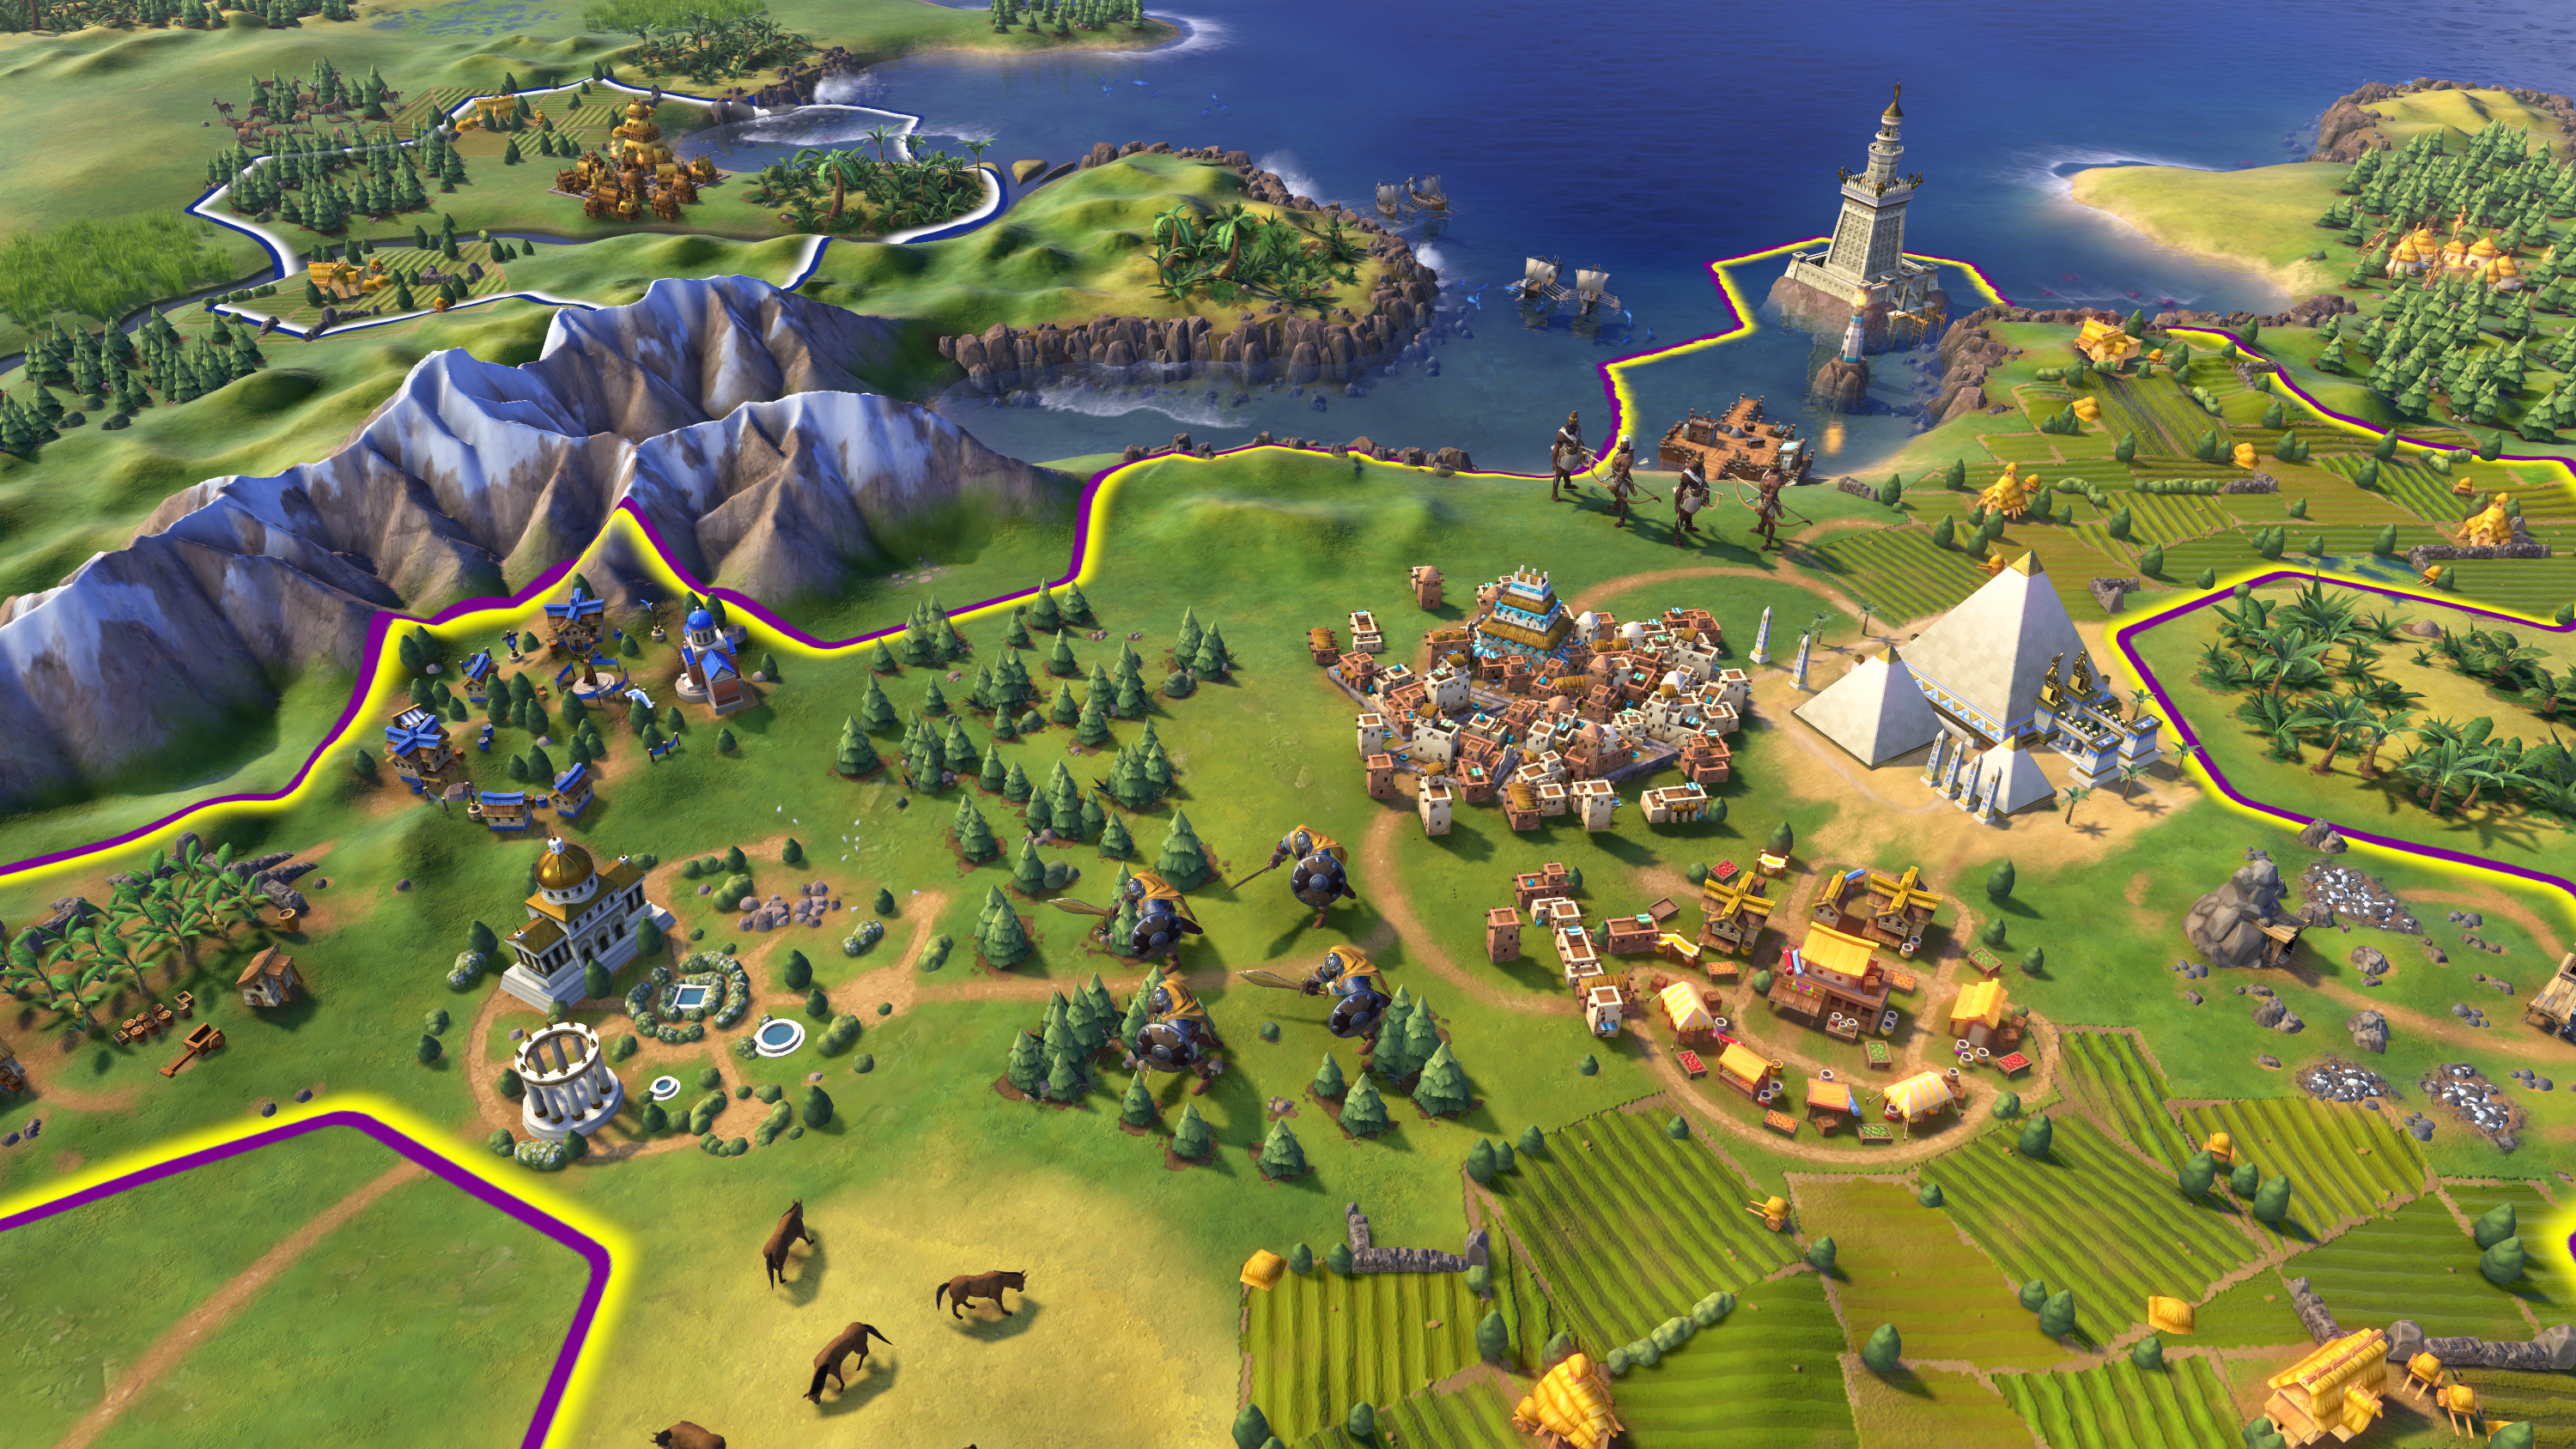 Civilization 6 is coming in October, with big changes | Polygon